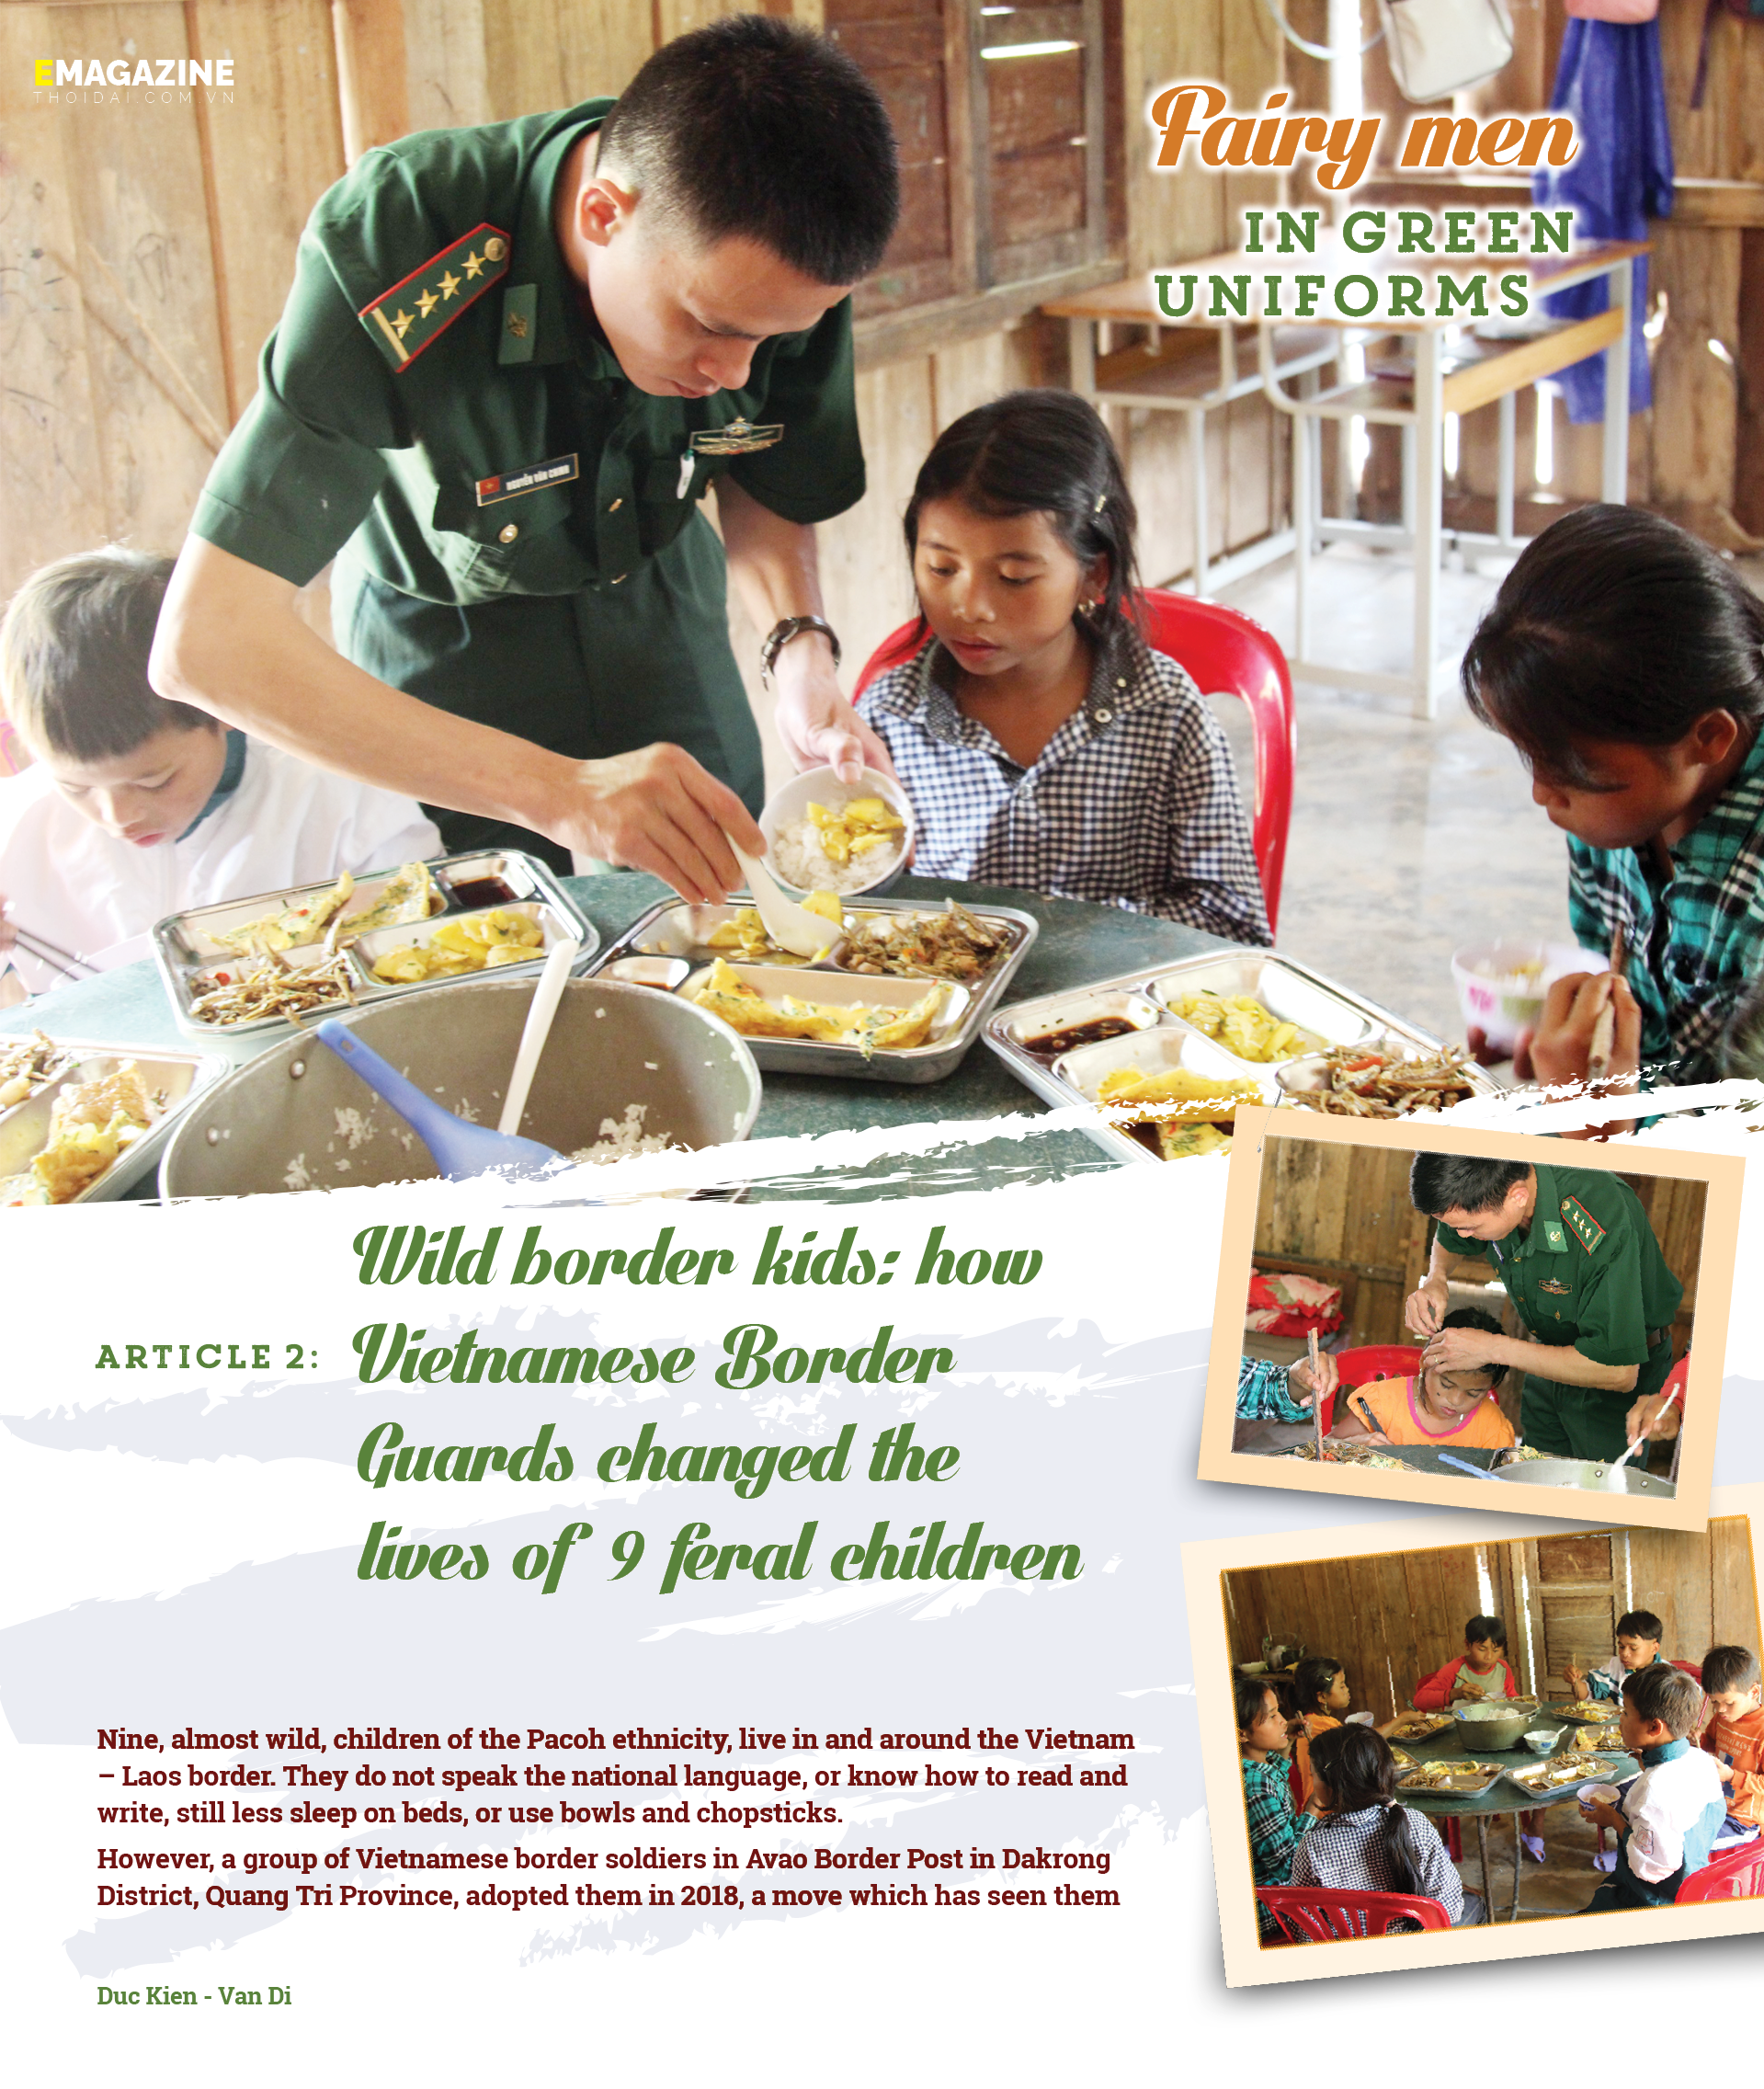 Wild border kids: how Vietnamese Border Guards changed the lives of 9 feral children